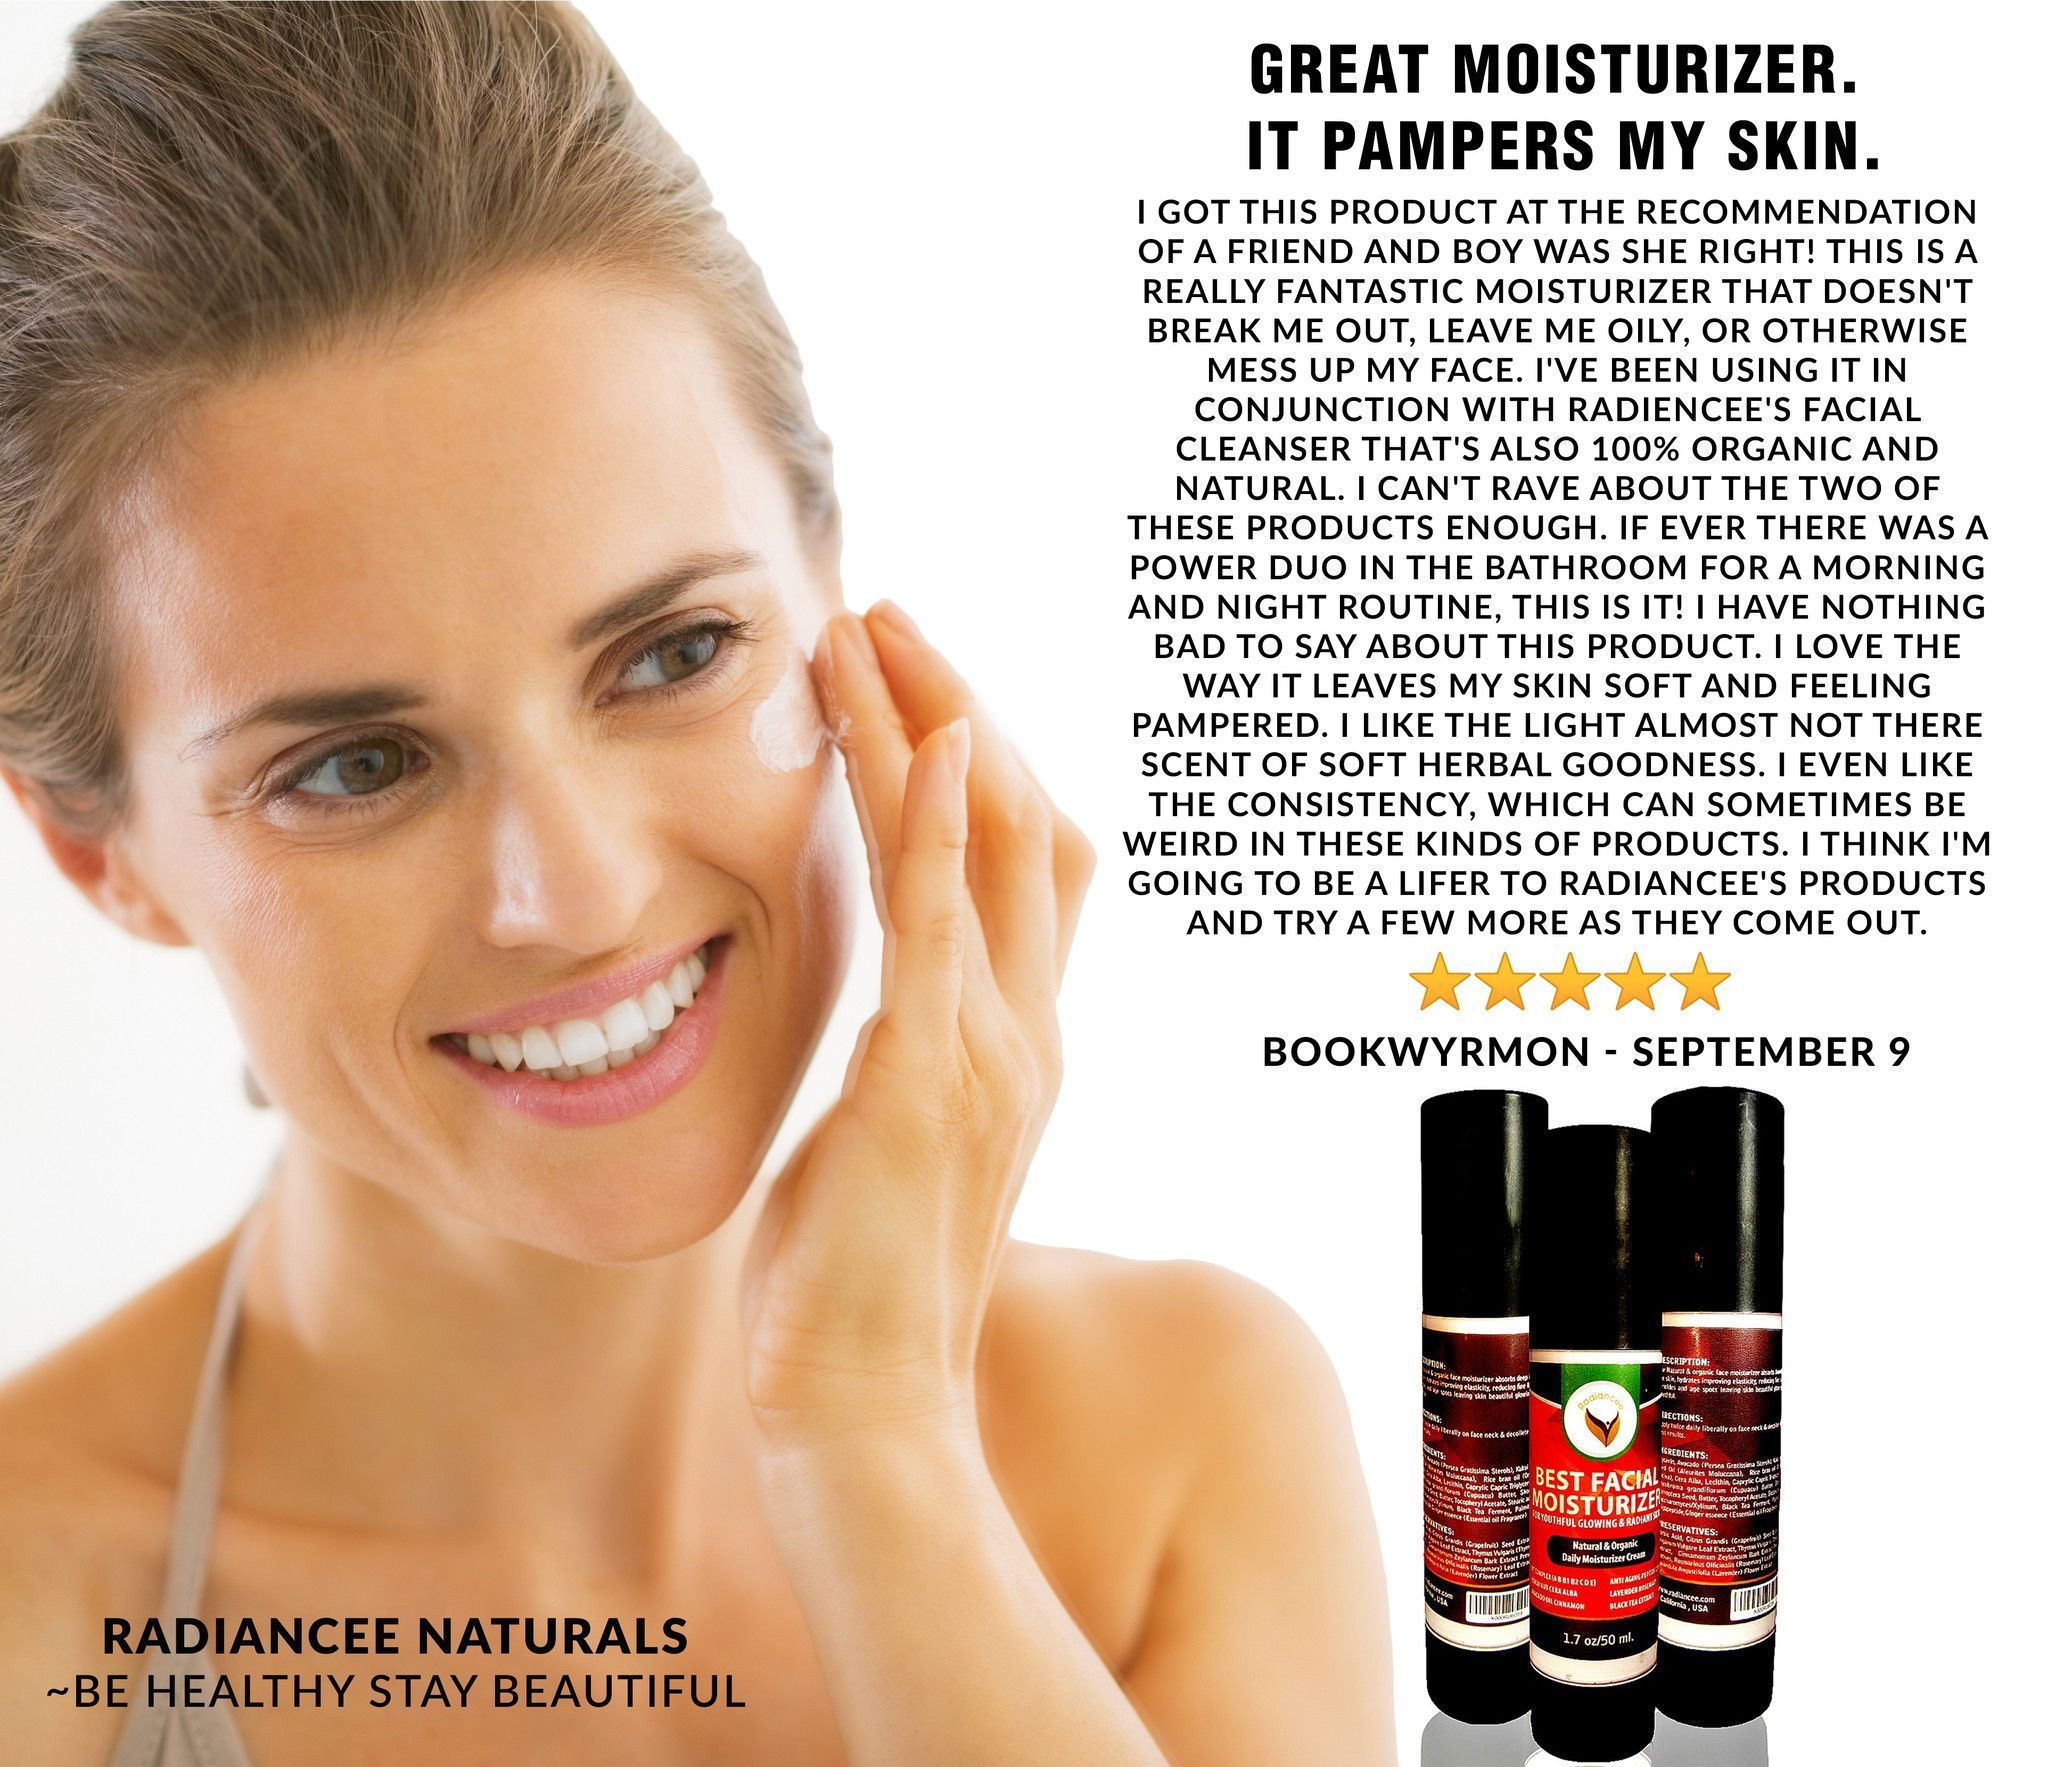 Best Anti Aging Natural Facial Moisturizer for Dry & Rough Skin